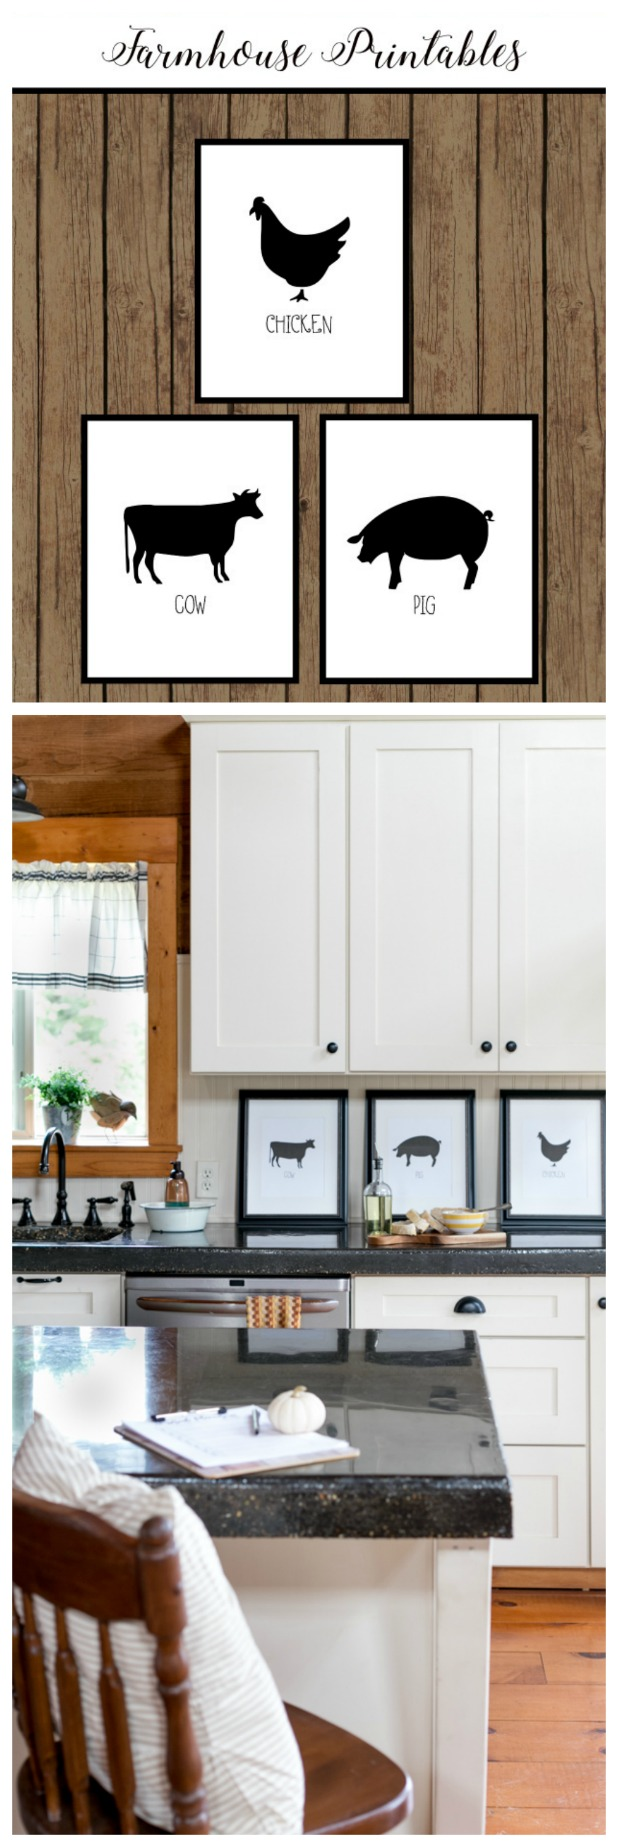 Free Farmhouse Printables, Chicken, Cow, Pig